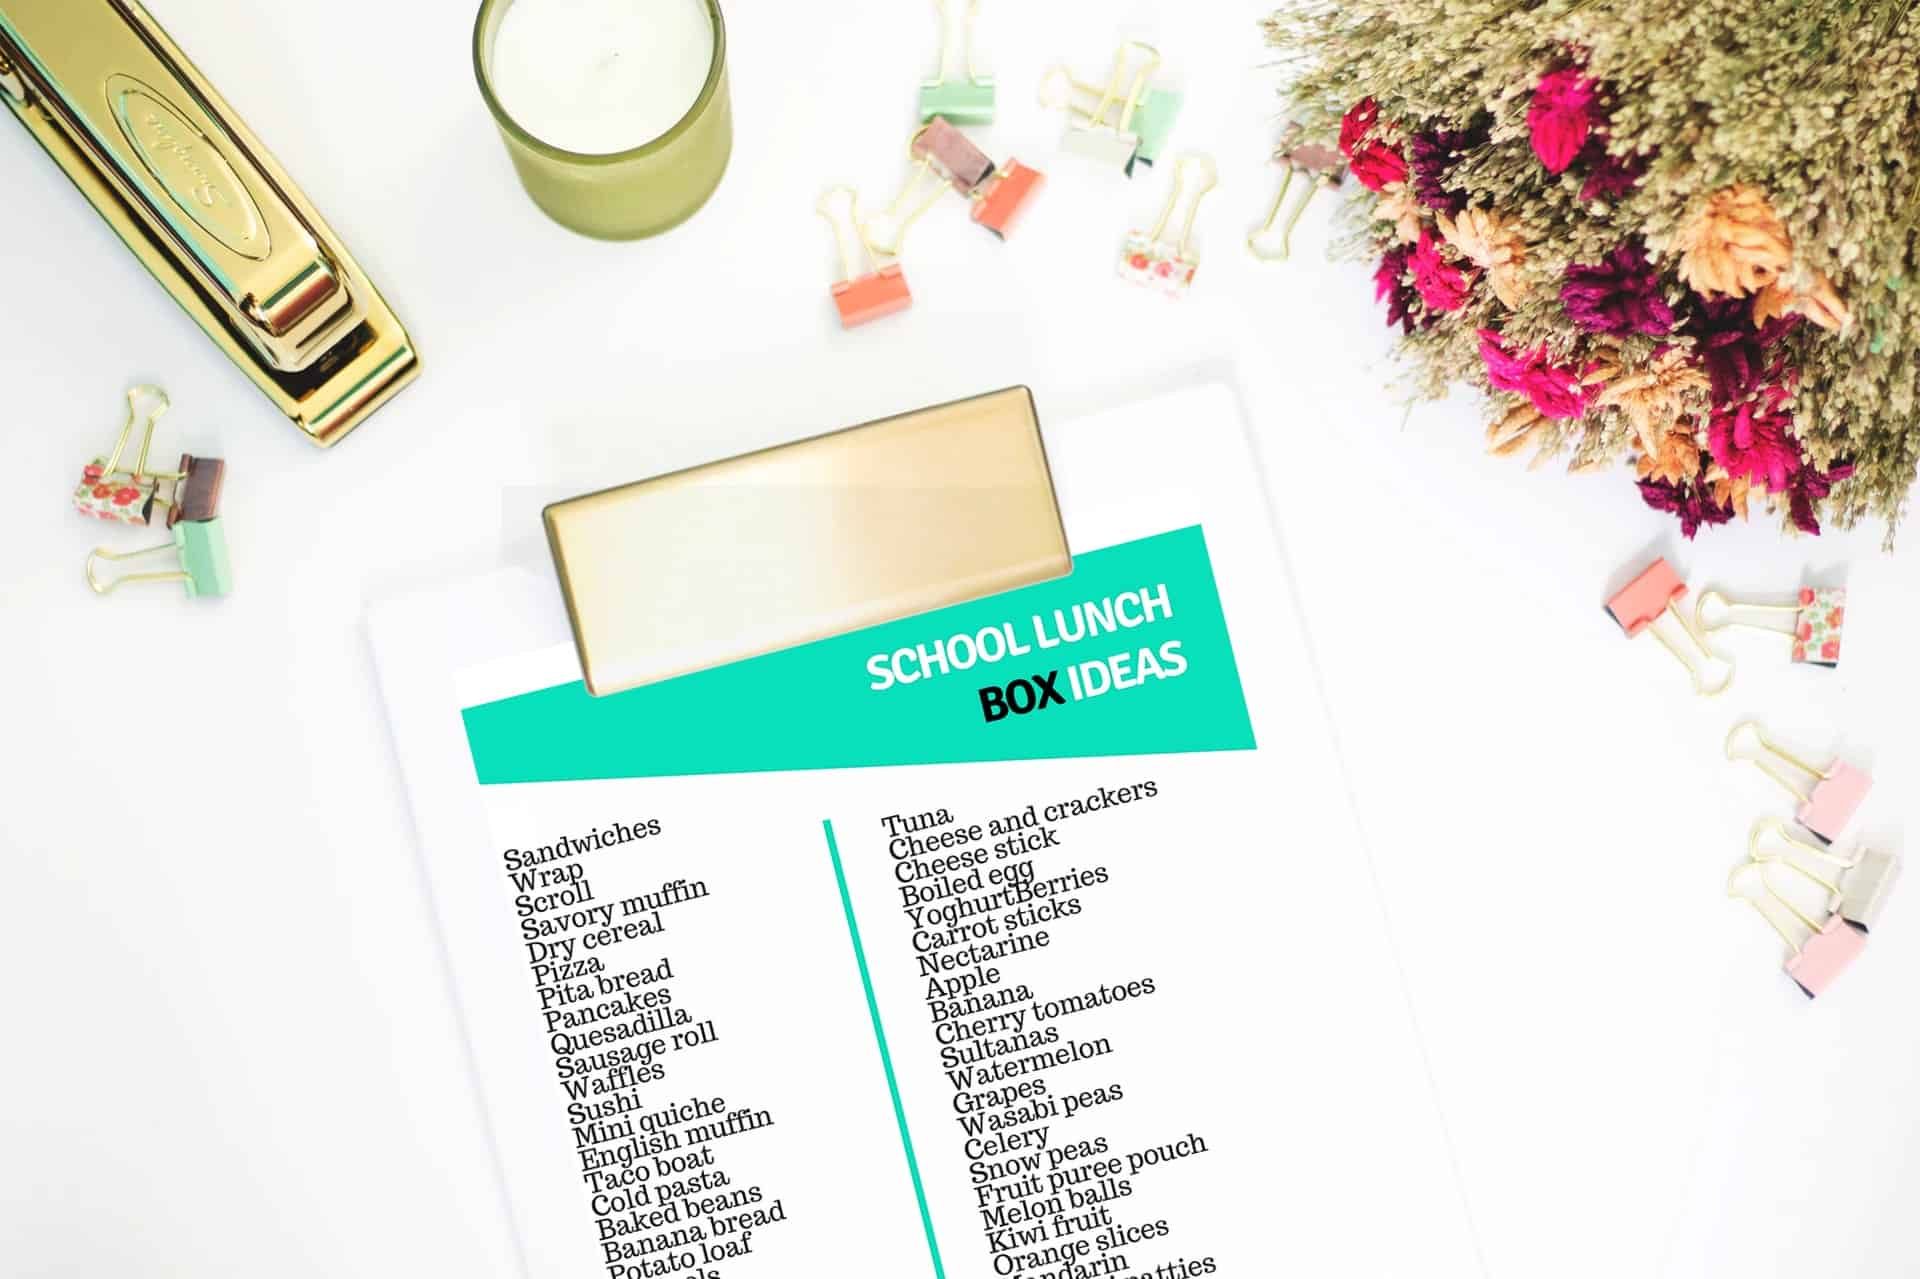 Lunch box ideas printable list